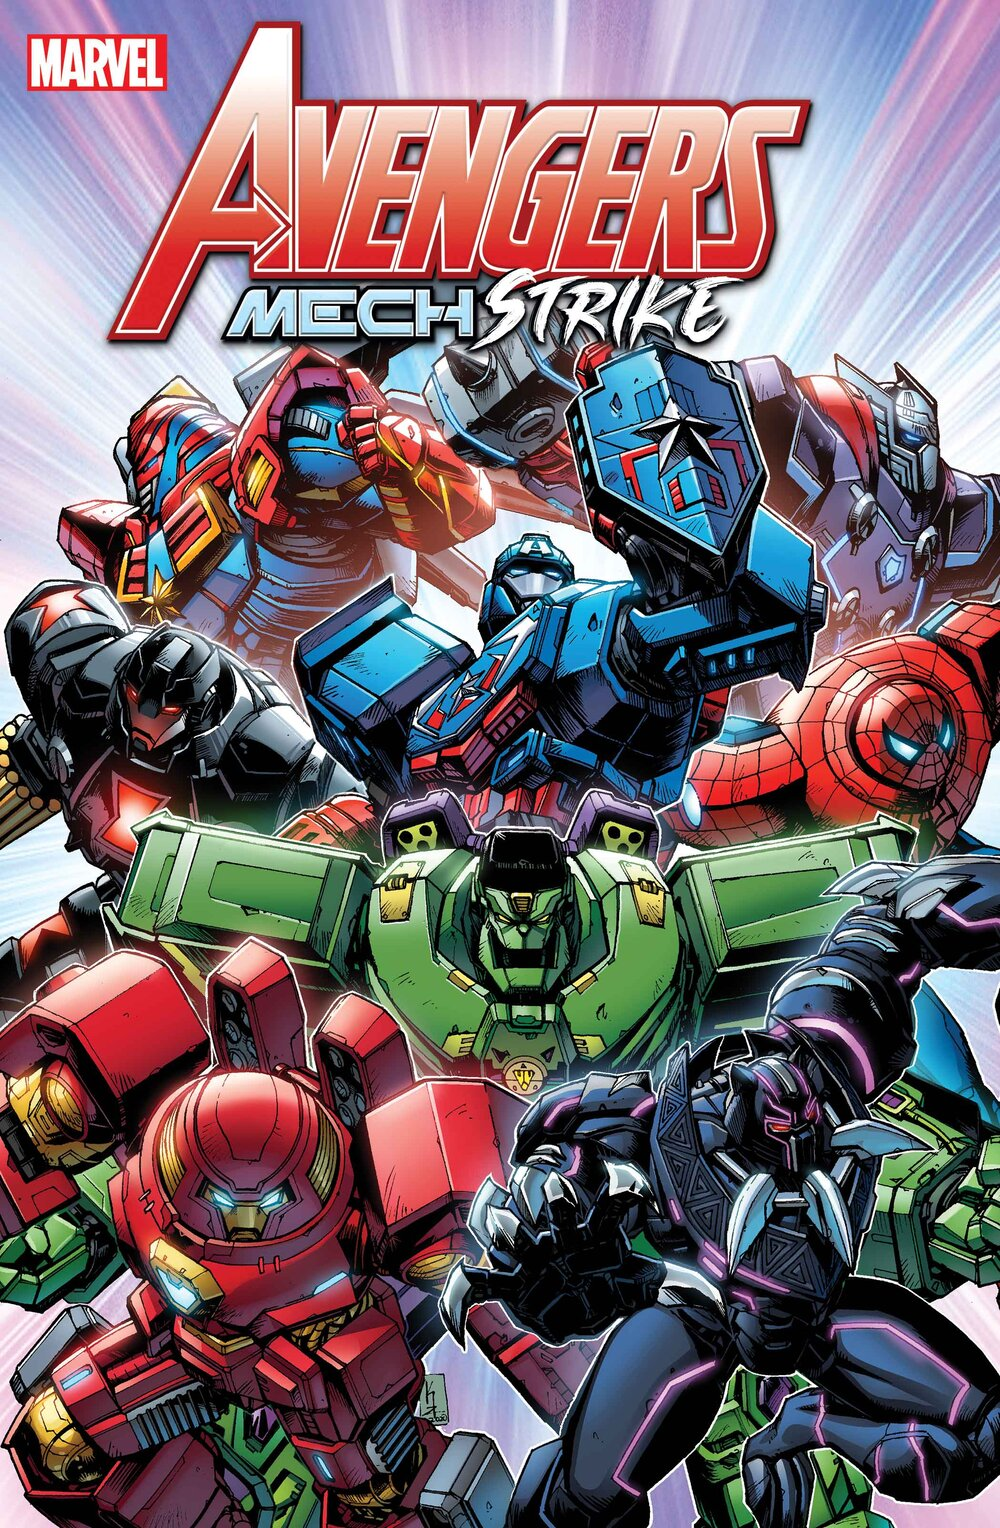 marvels-avengers-get-their-own-giant-mech-suits-in-new-avengers-mech-strike-comic-series98